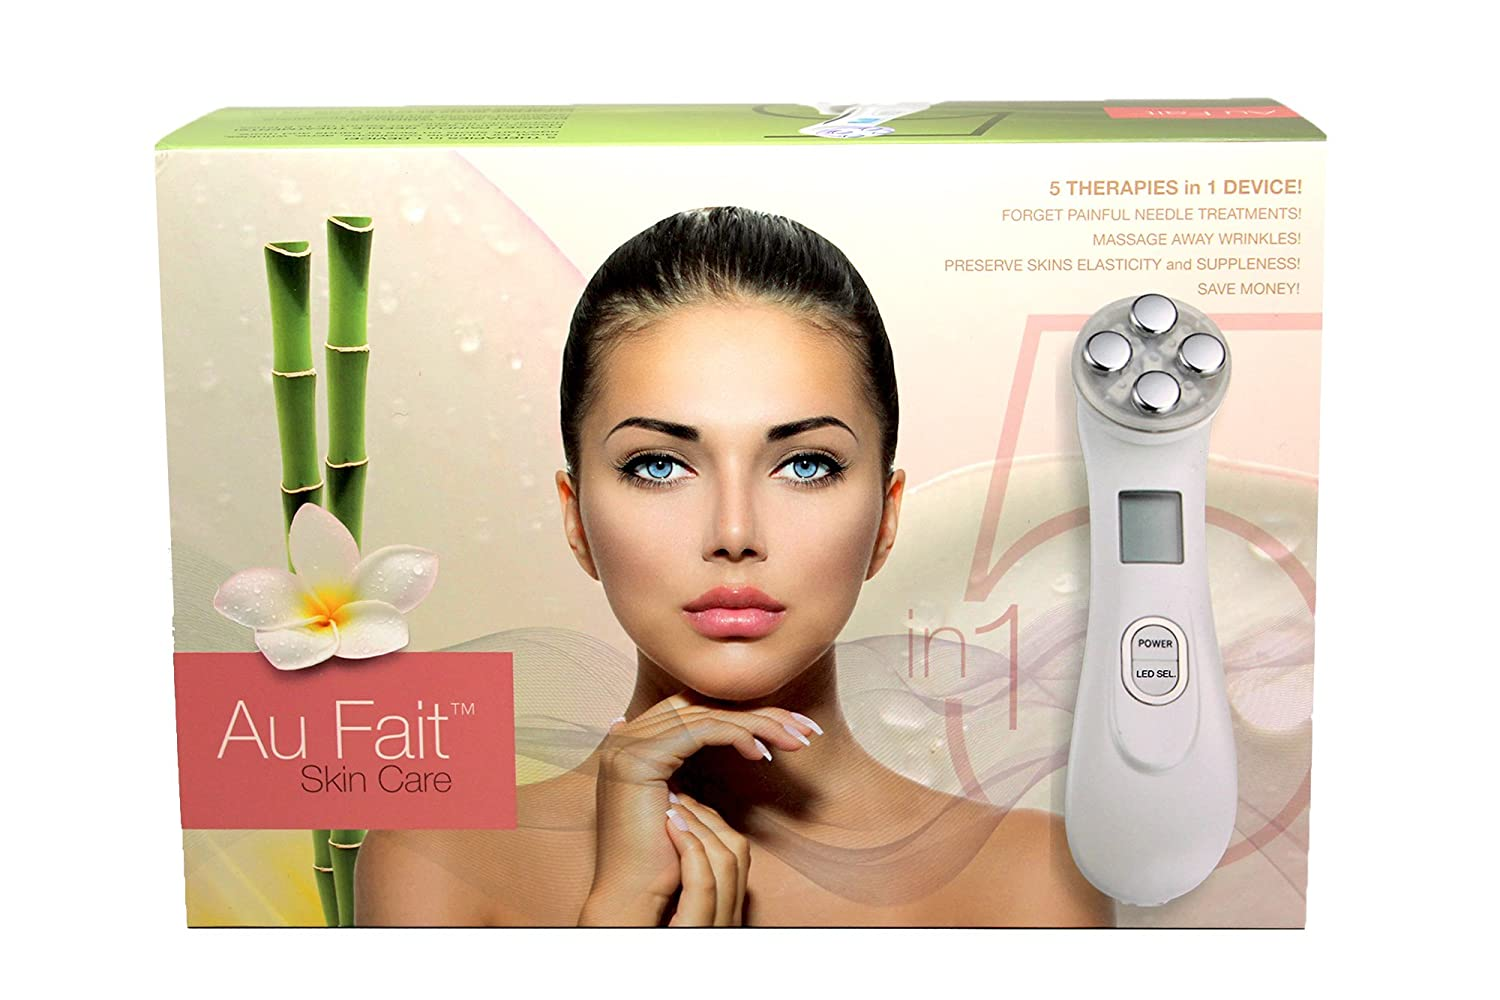 Au Fait Skin Care Galvanic High Frequency RF LED Light Therapy Anti-Aging Facial Skin Tightening Beauty Device